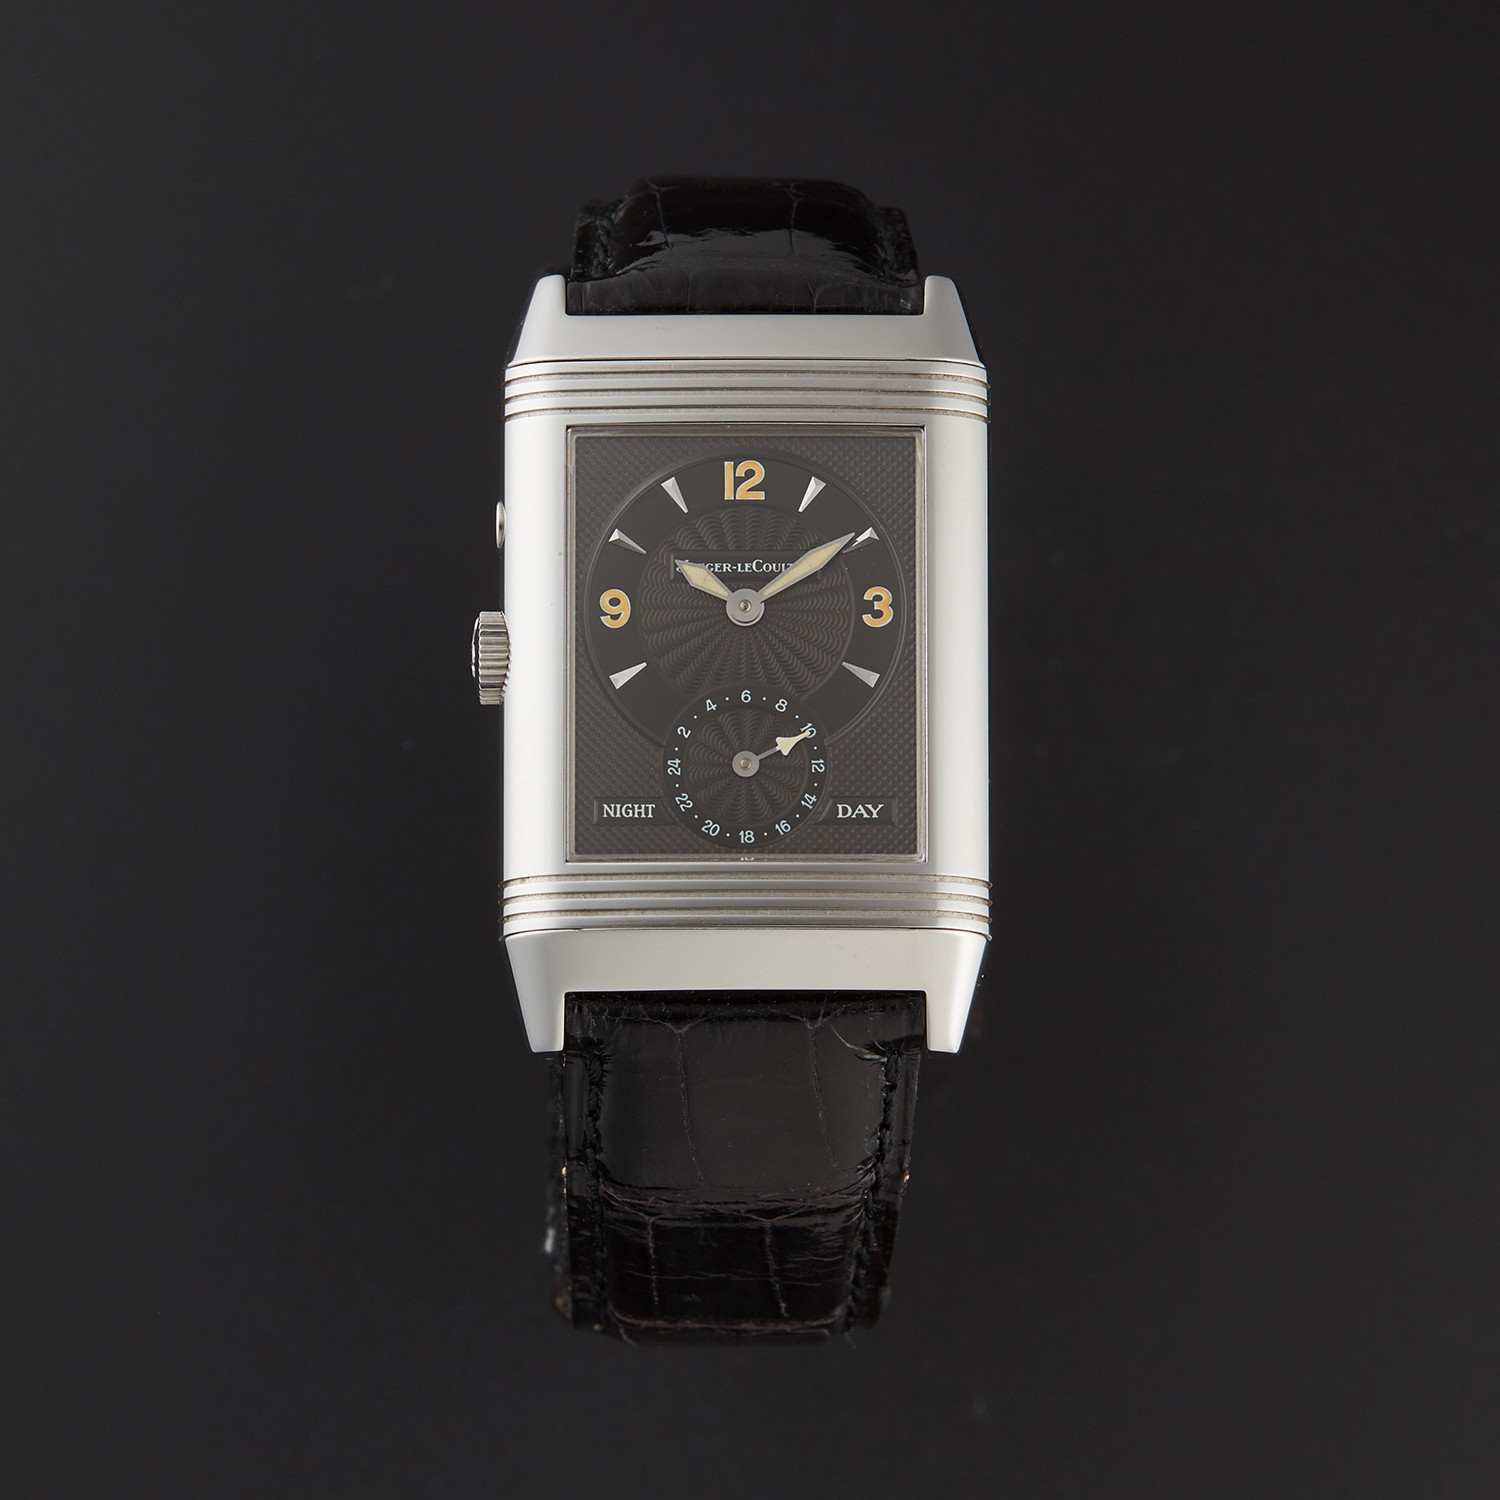 69ec94101b61 Jaeger LeCoultre Day Night Reverso Manual Wind    270.8.54    Pre ...